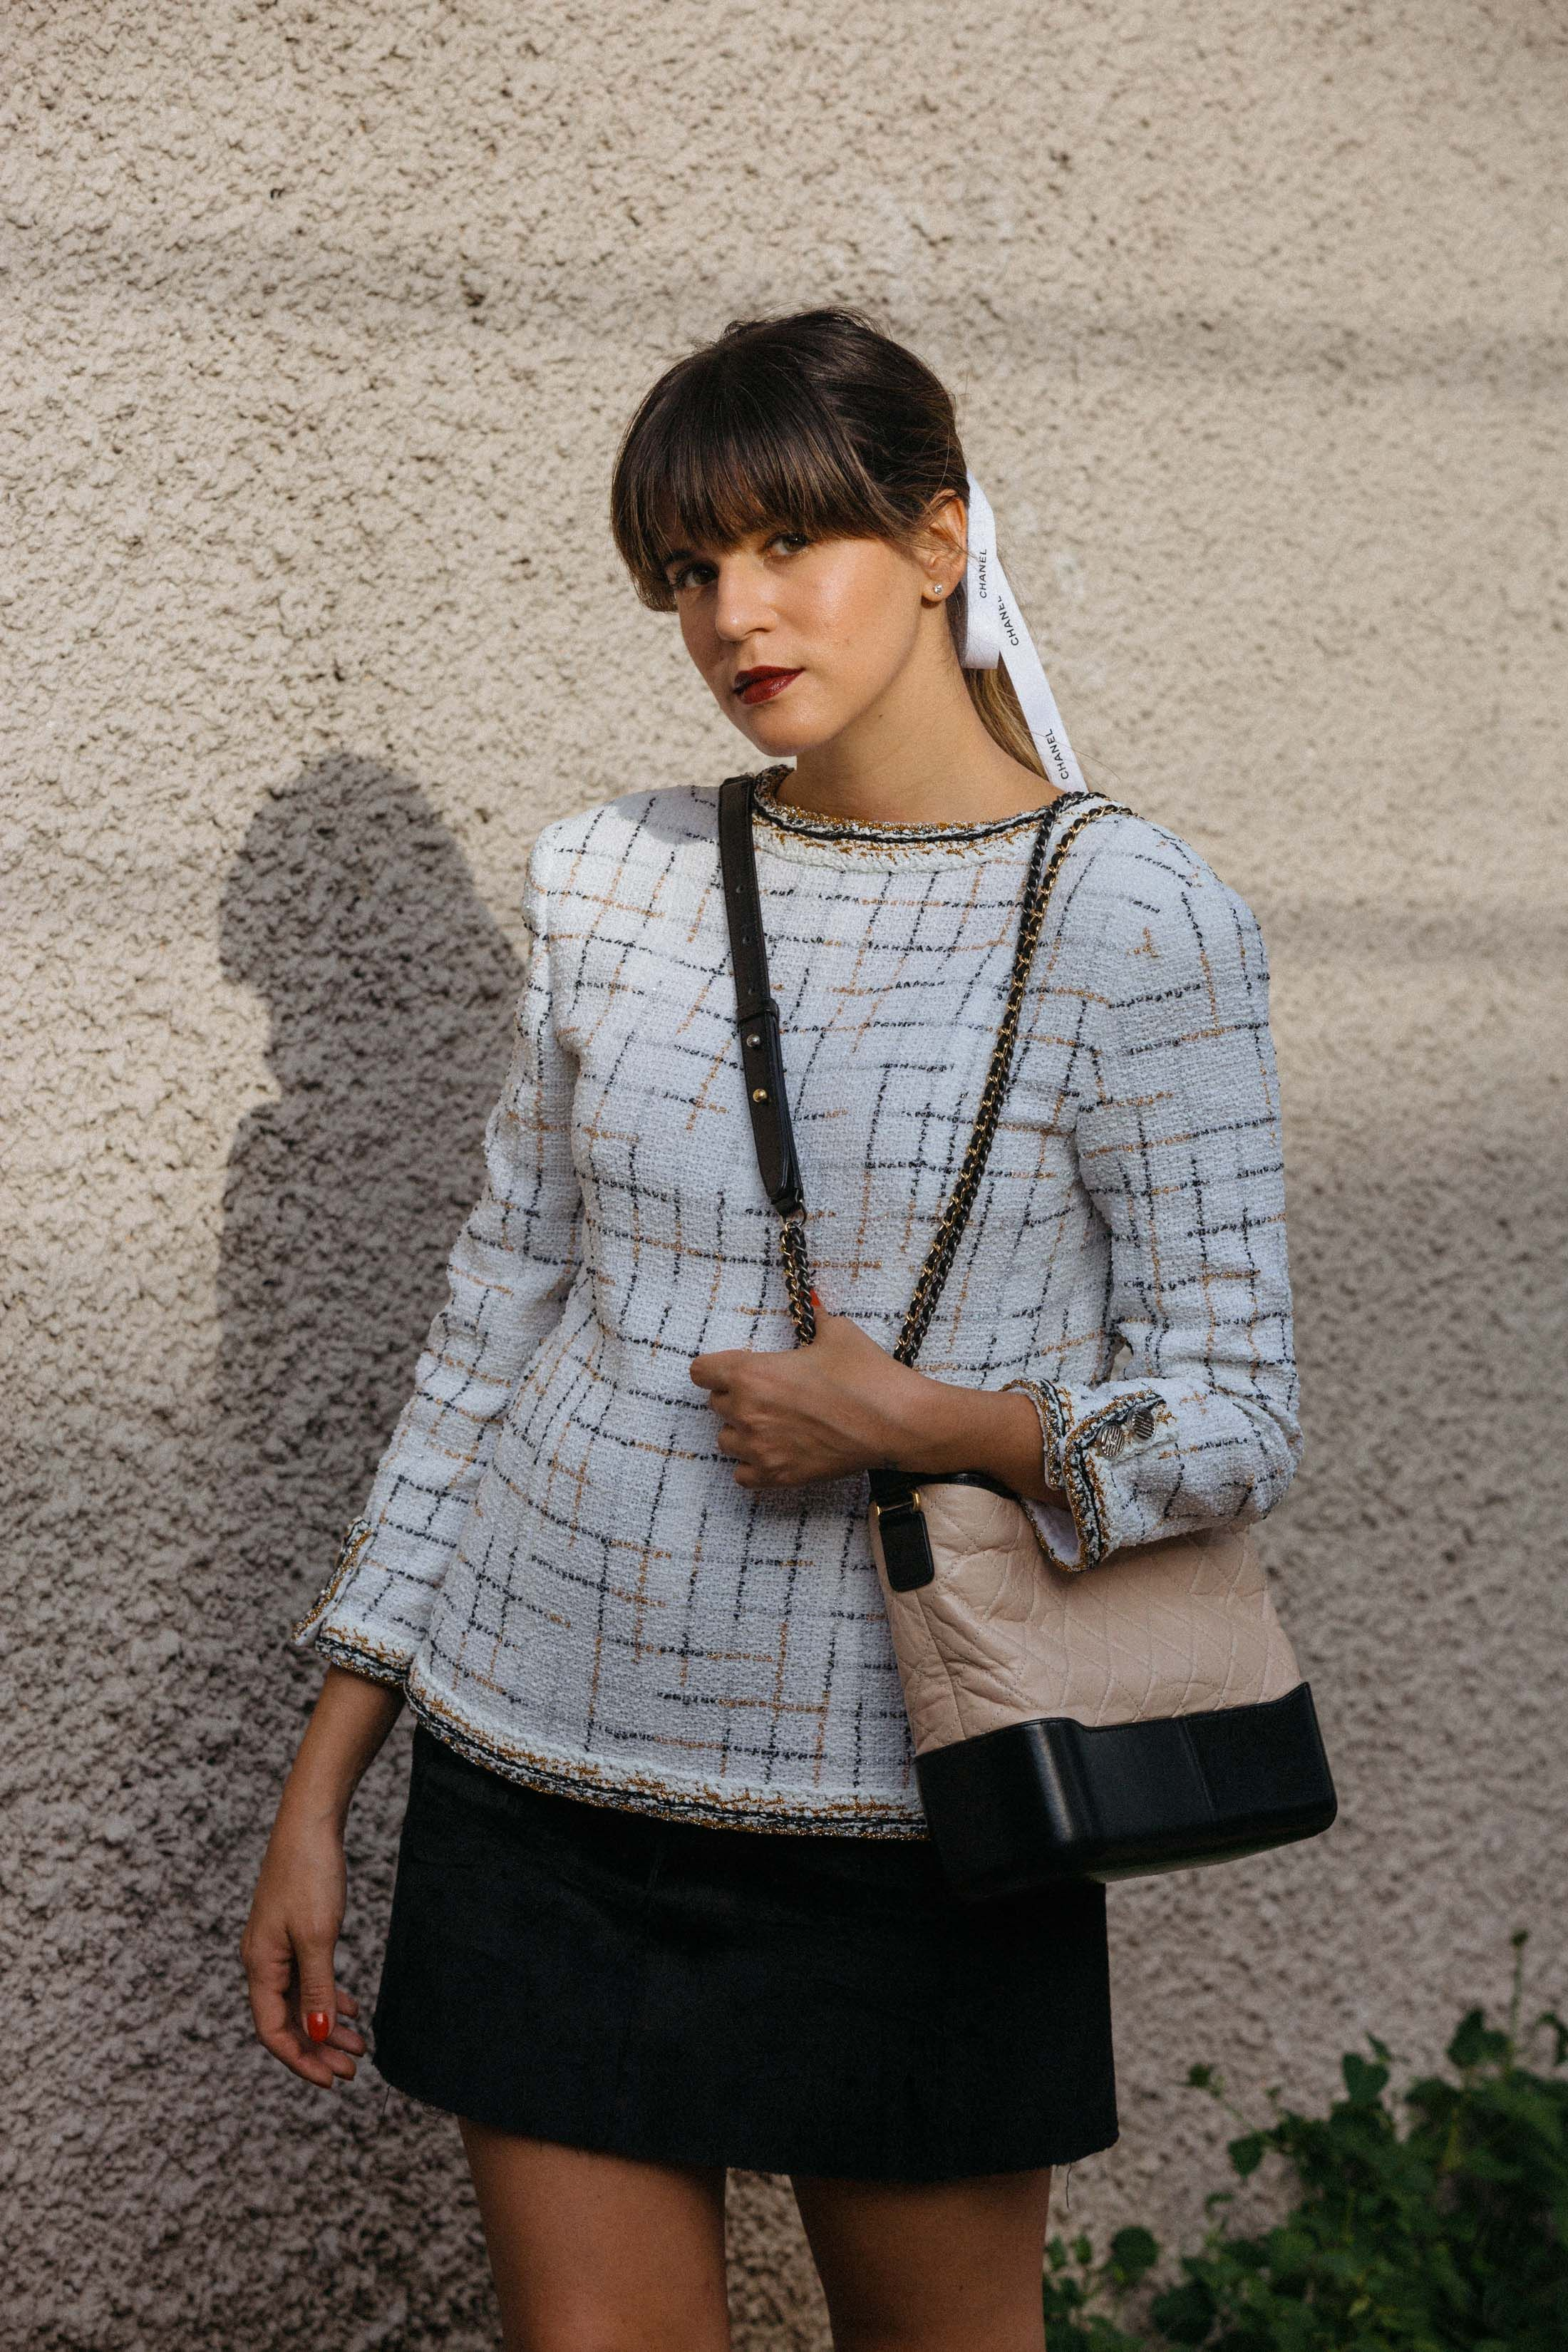 ce6835f106f697 Maristella styles her bangs with a ponytail and Chanel ribbon and wears the Chanel  Gabrielle bag in the V style